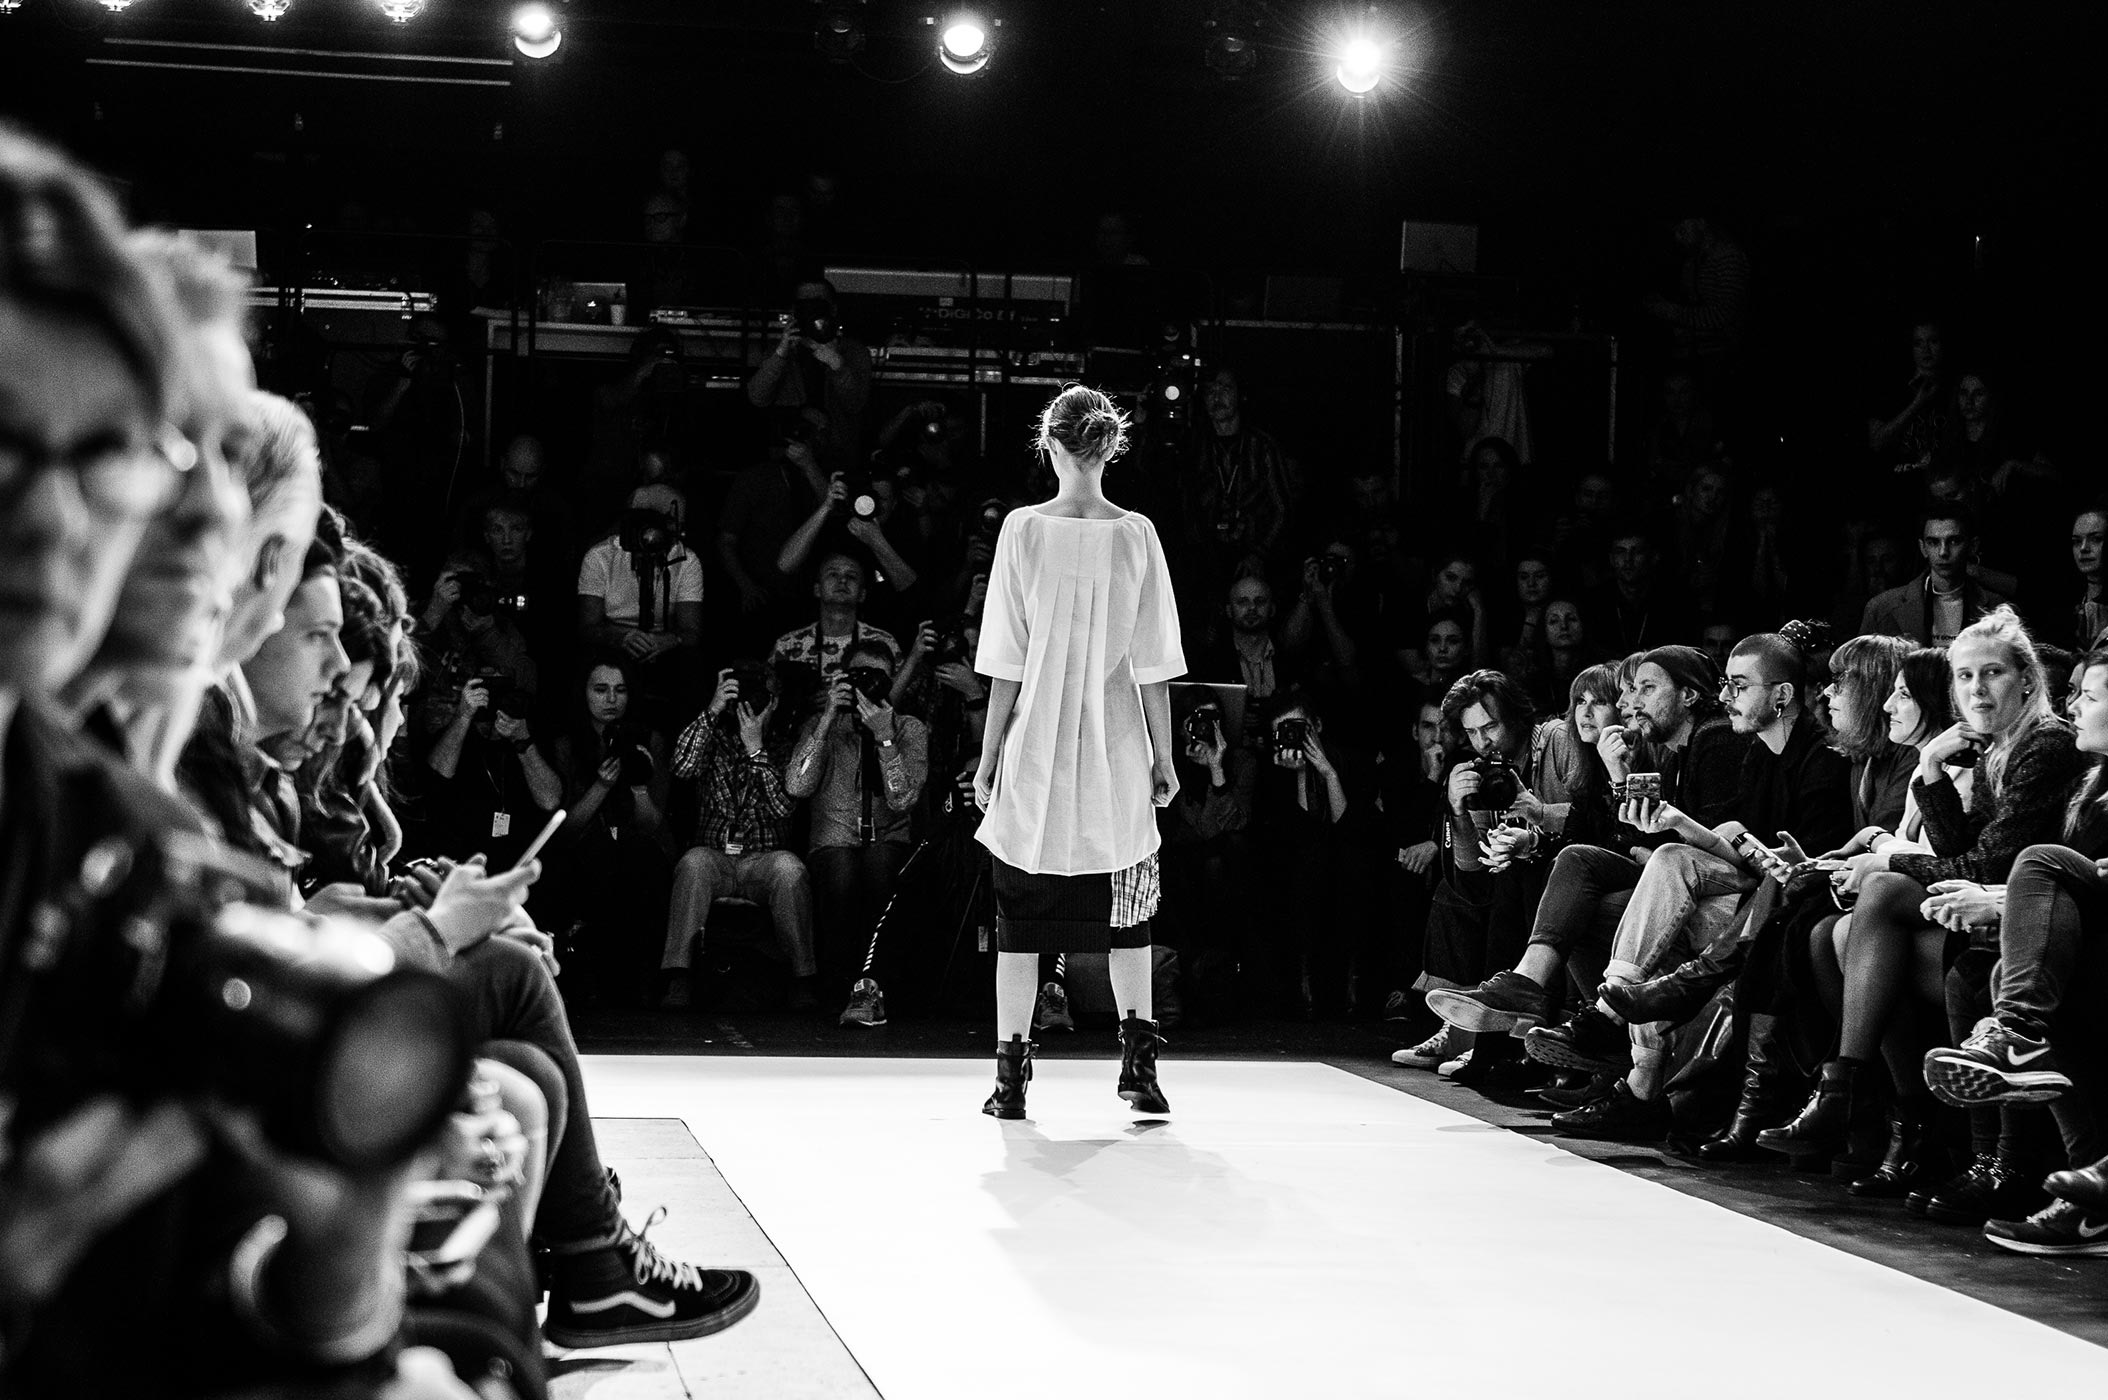 poland_28_catwalk-black-and-white-photography